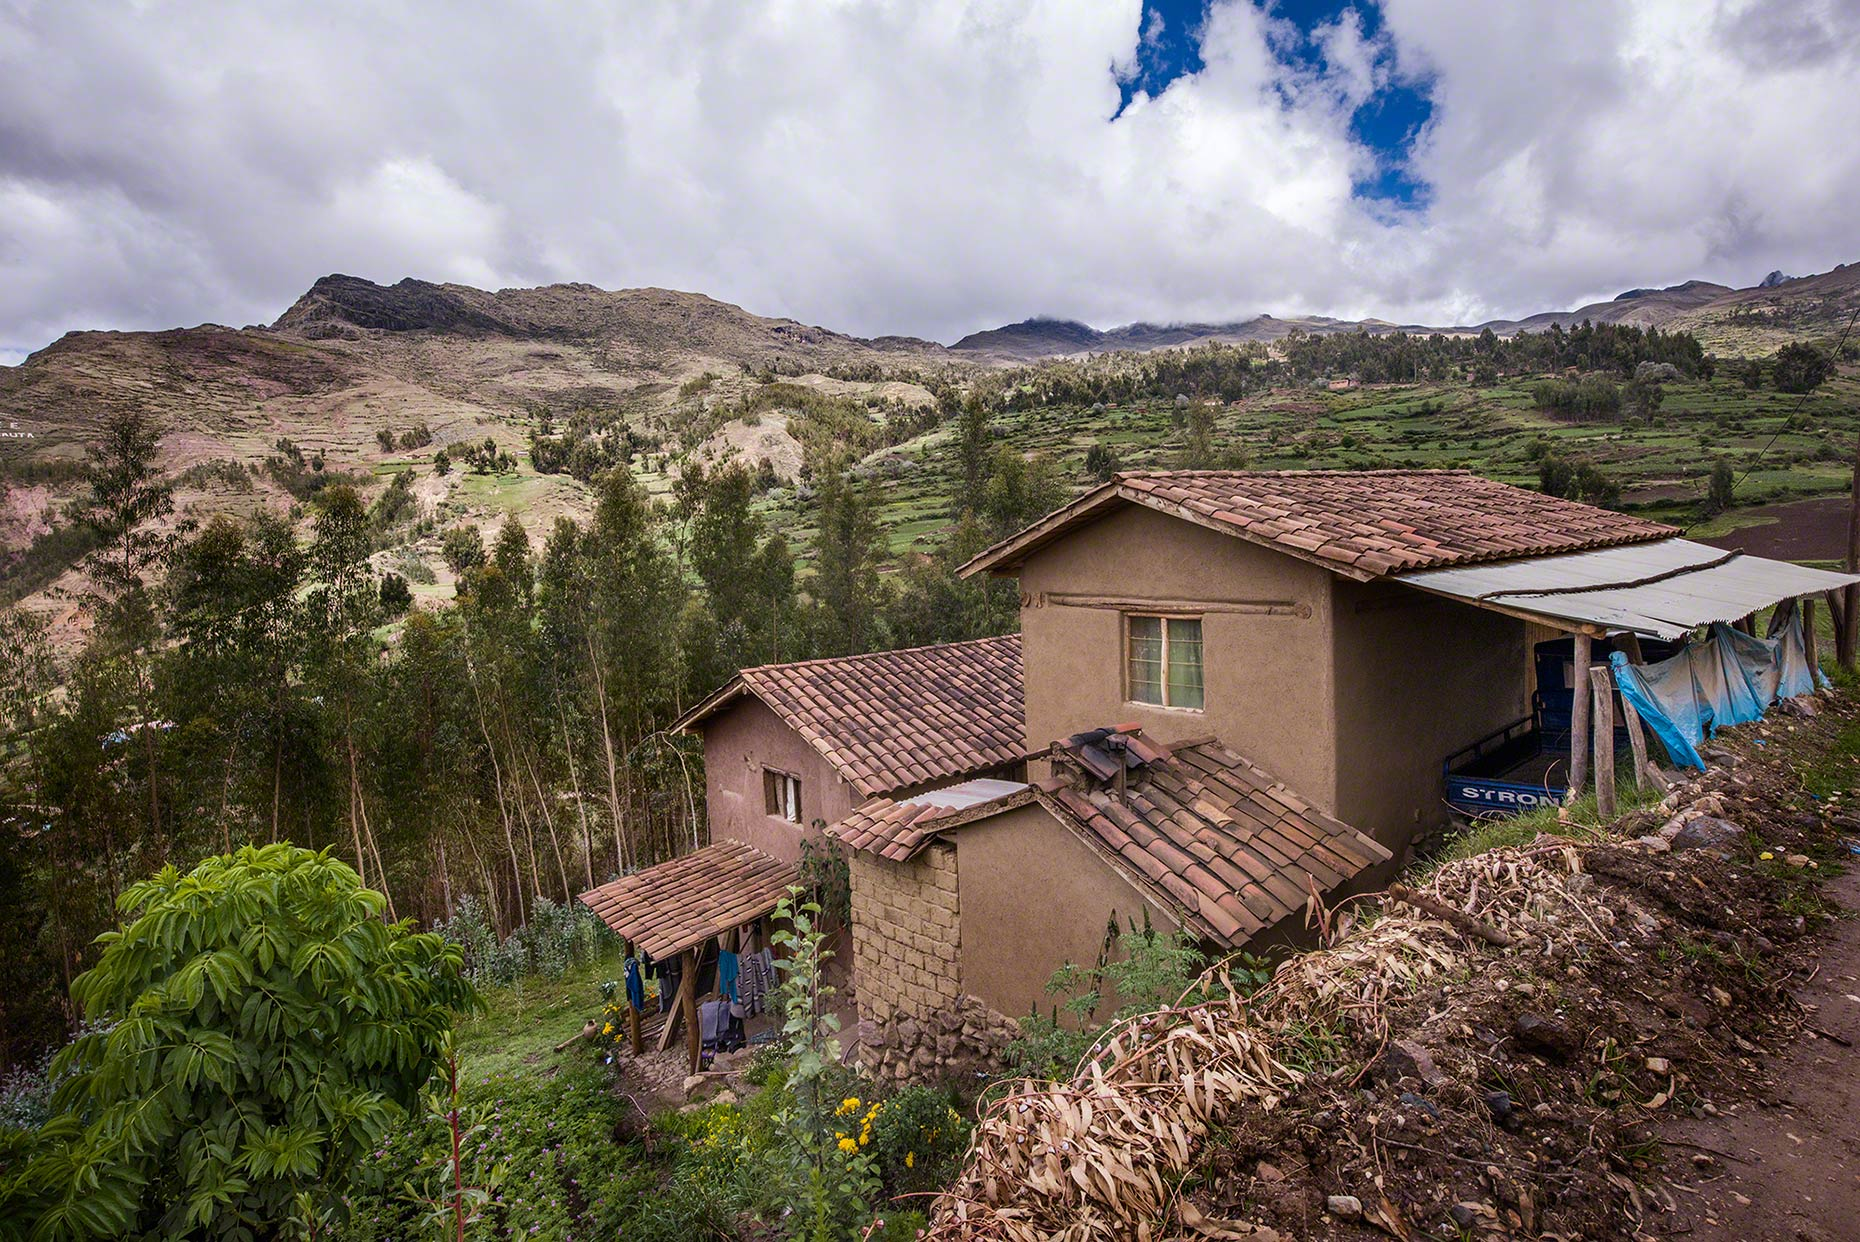 Casa De Reyes:The Reyes family home, in the highland community of Sacaca above above the Sacred Valley in the Peruvian Andes, approximately 9500 feet above sea level.